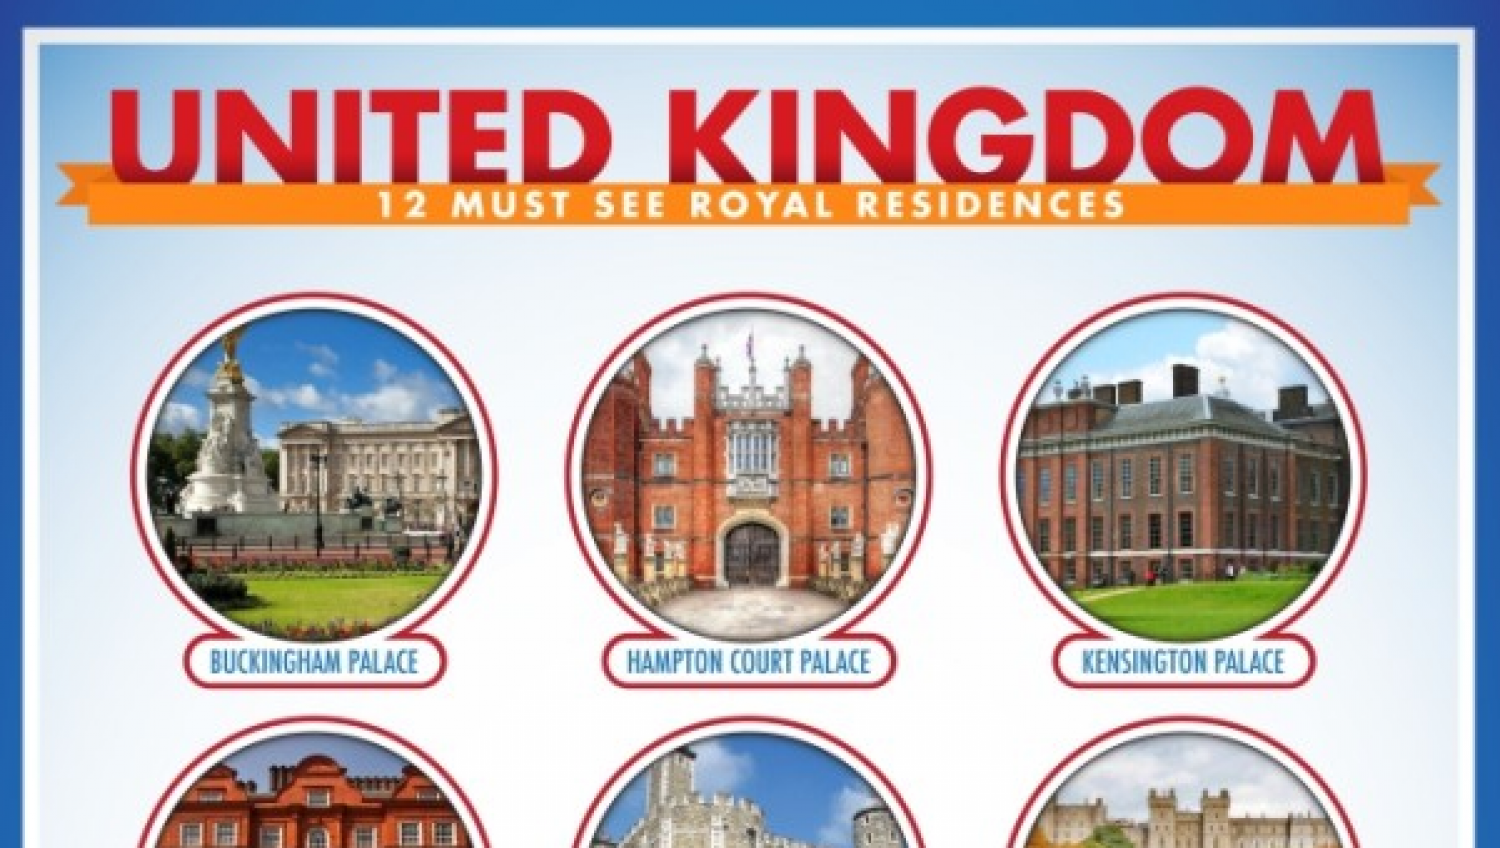 United Kingdom: 12 Must See Royal Residences Infographic